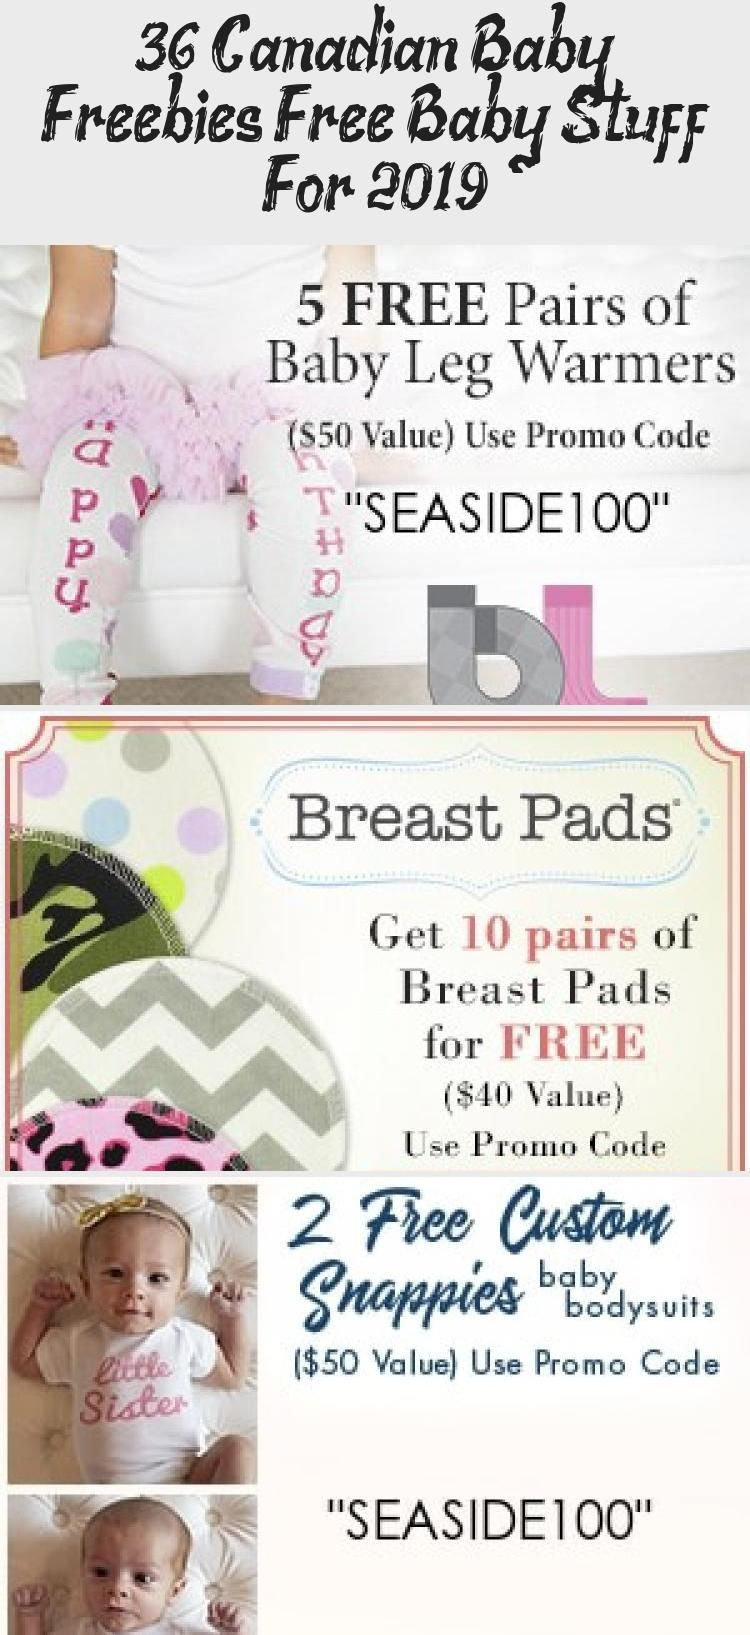 Free Stuff For Babies And Expecting Moms The Best Baby Freebies 2017 Did You Know That New Moms Can Get Lots Of In 2020 Baby Freebies Free Baby Stuff Free Baby Gear